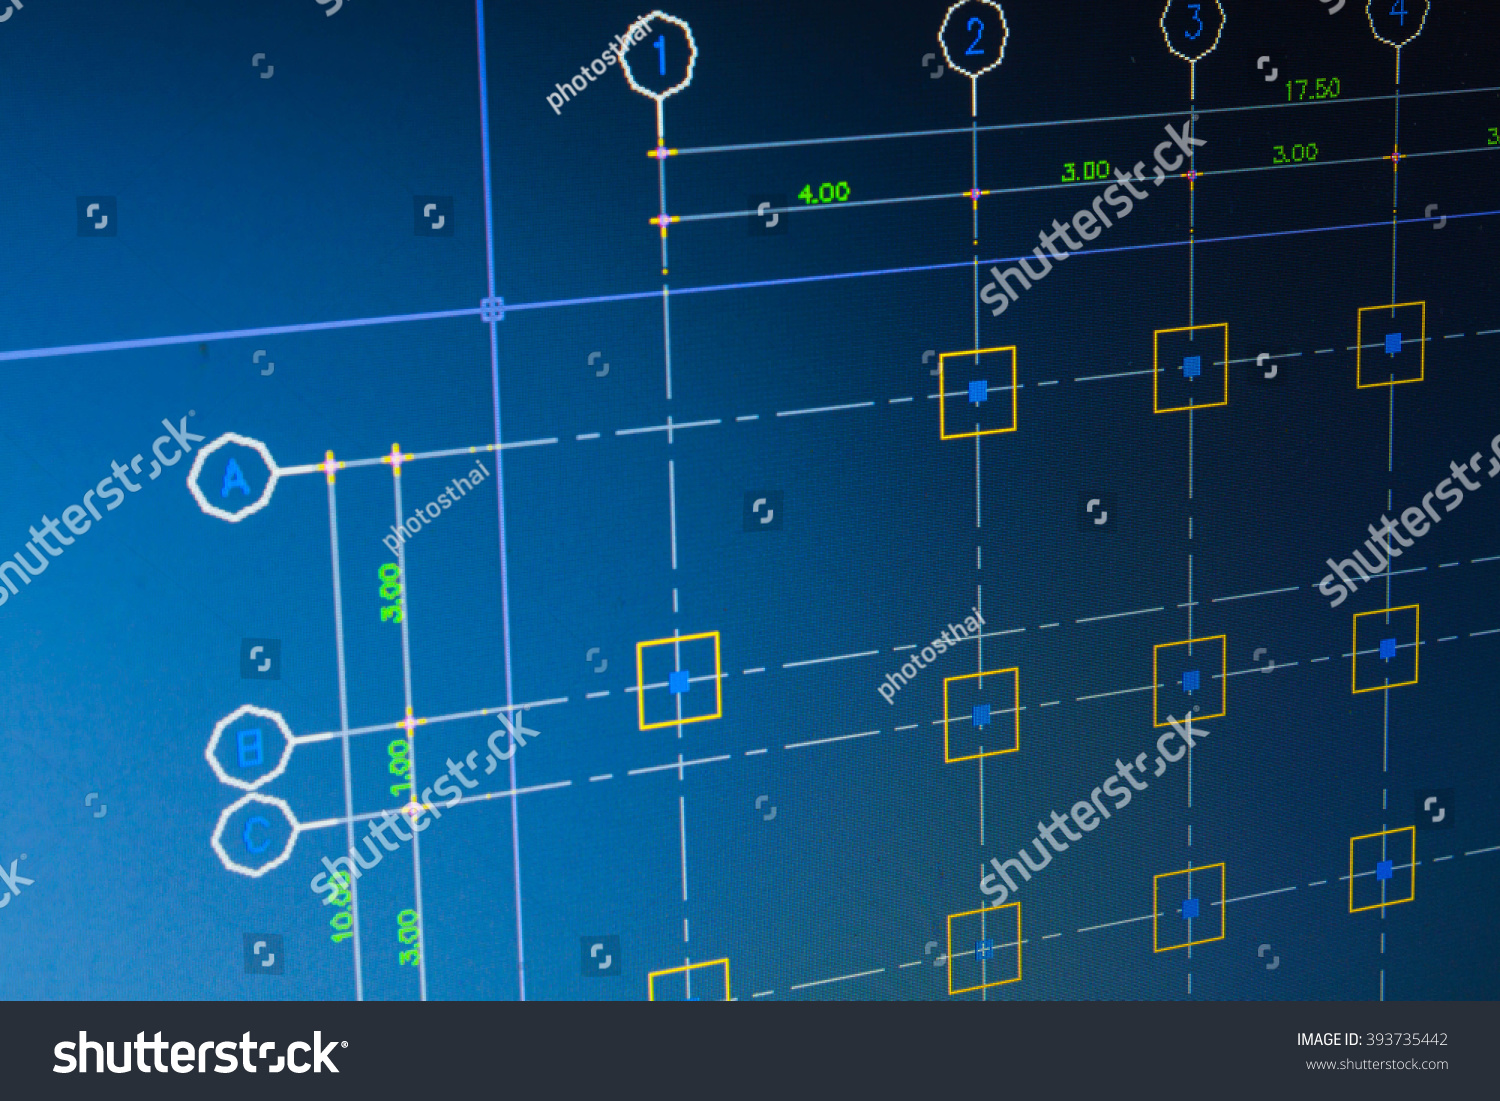 Close blueprint architect construction computer project stock close up blueprint architect construction with computer project sketch concept background malvernweather Gallery